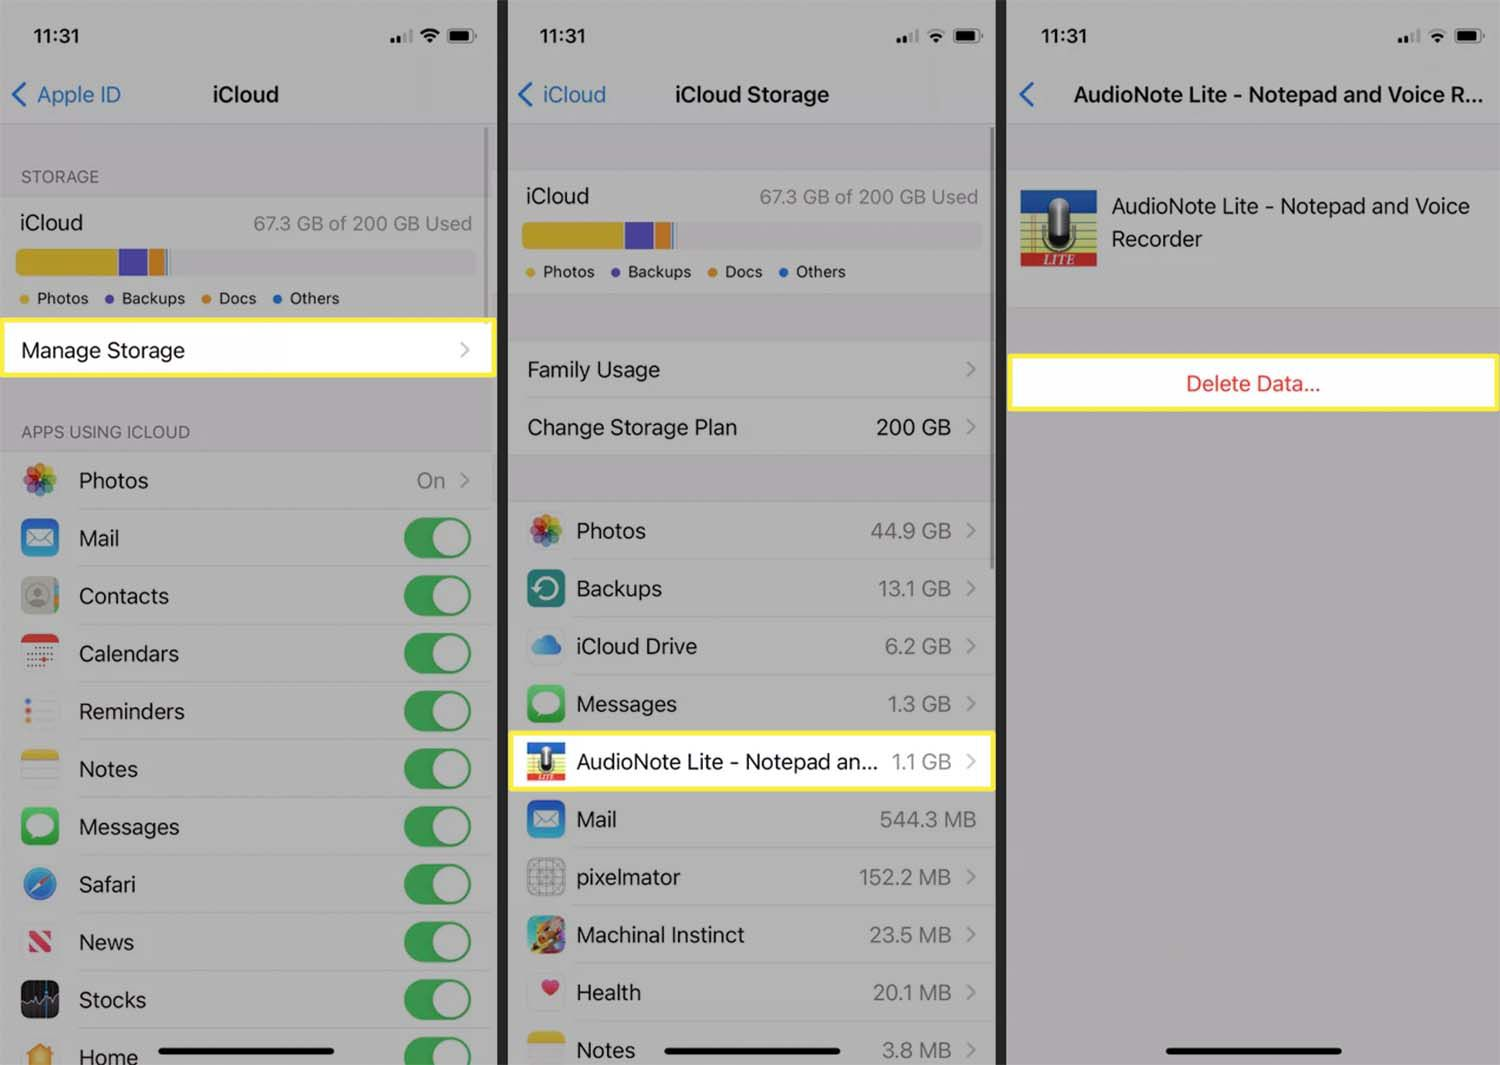 iCloud Storage and the option to delete data from an app on an iPhone.